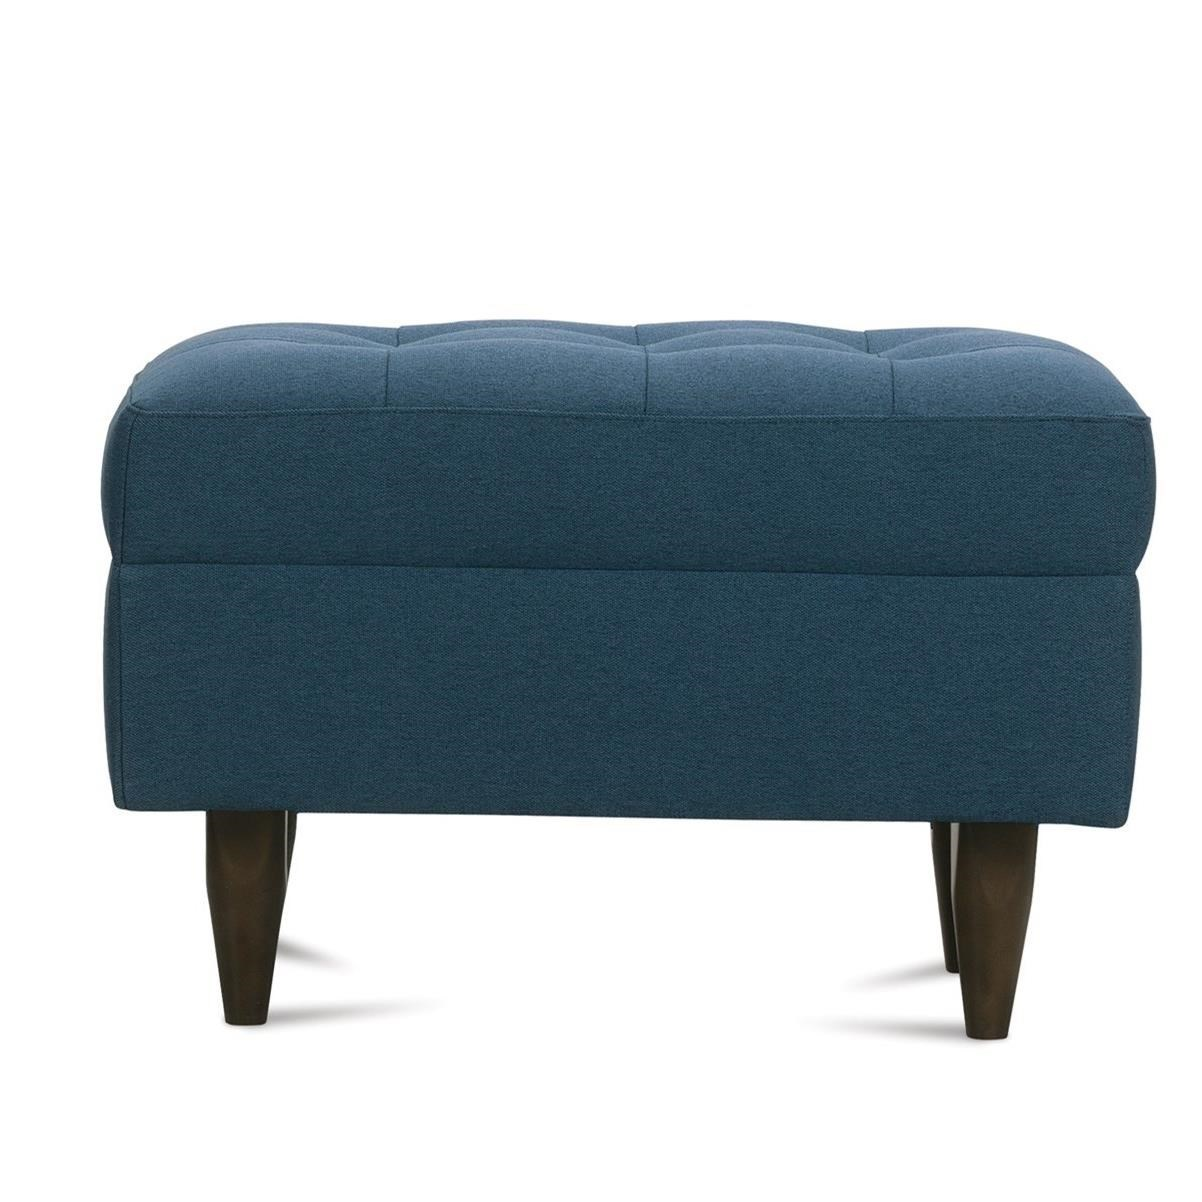 Modern Furniture Queens Ny rowe modern mix ottoman | nassau furniture | ottomans long island